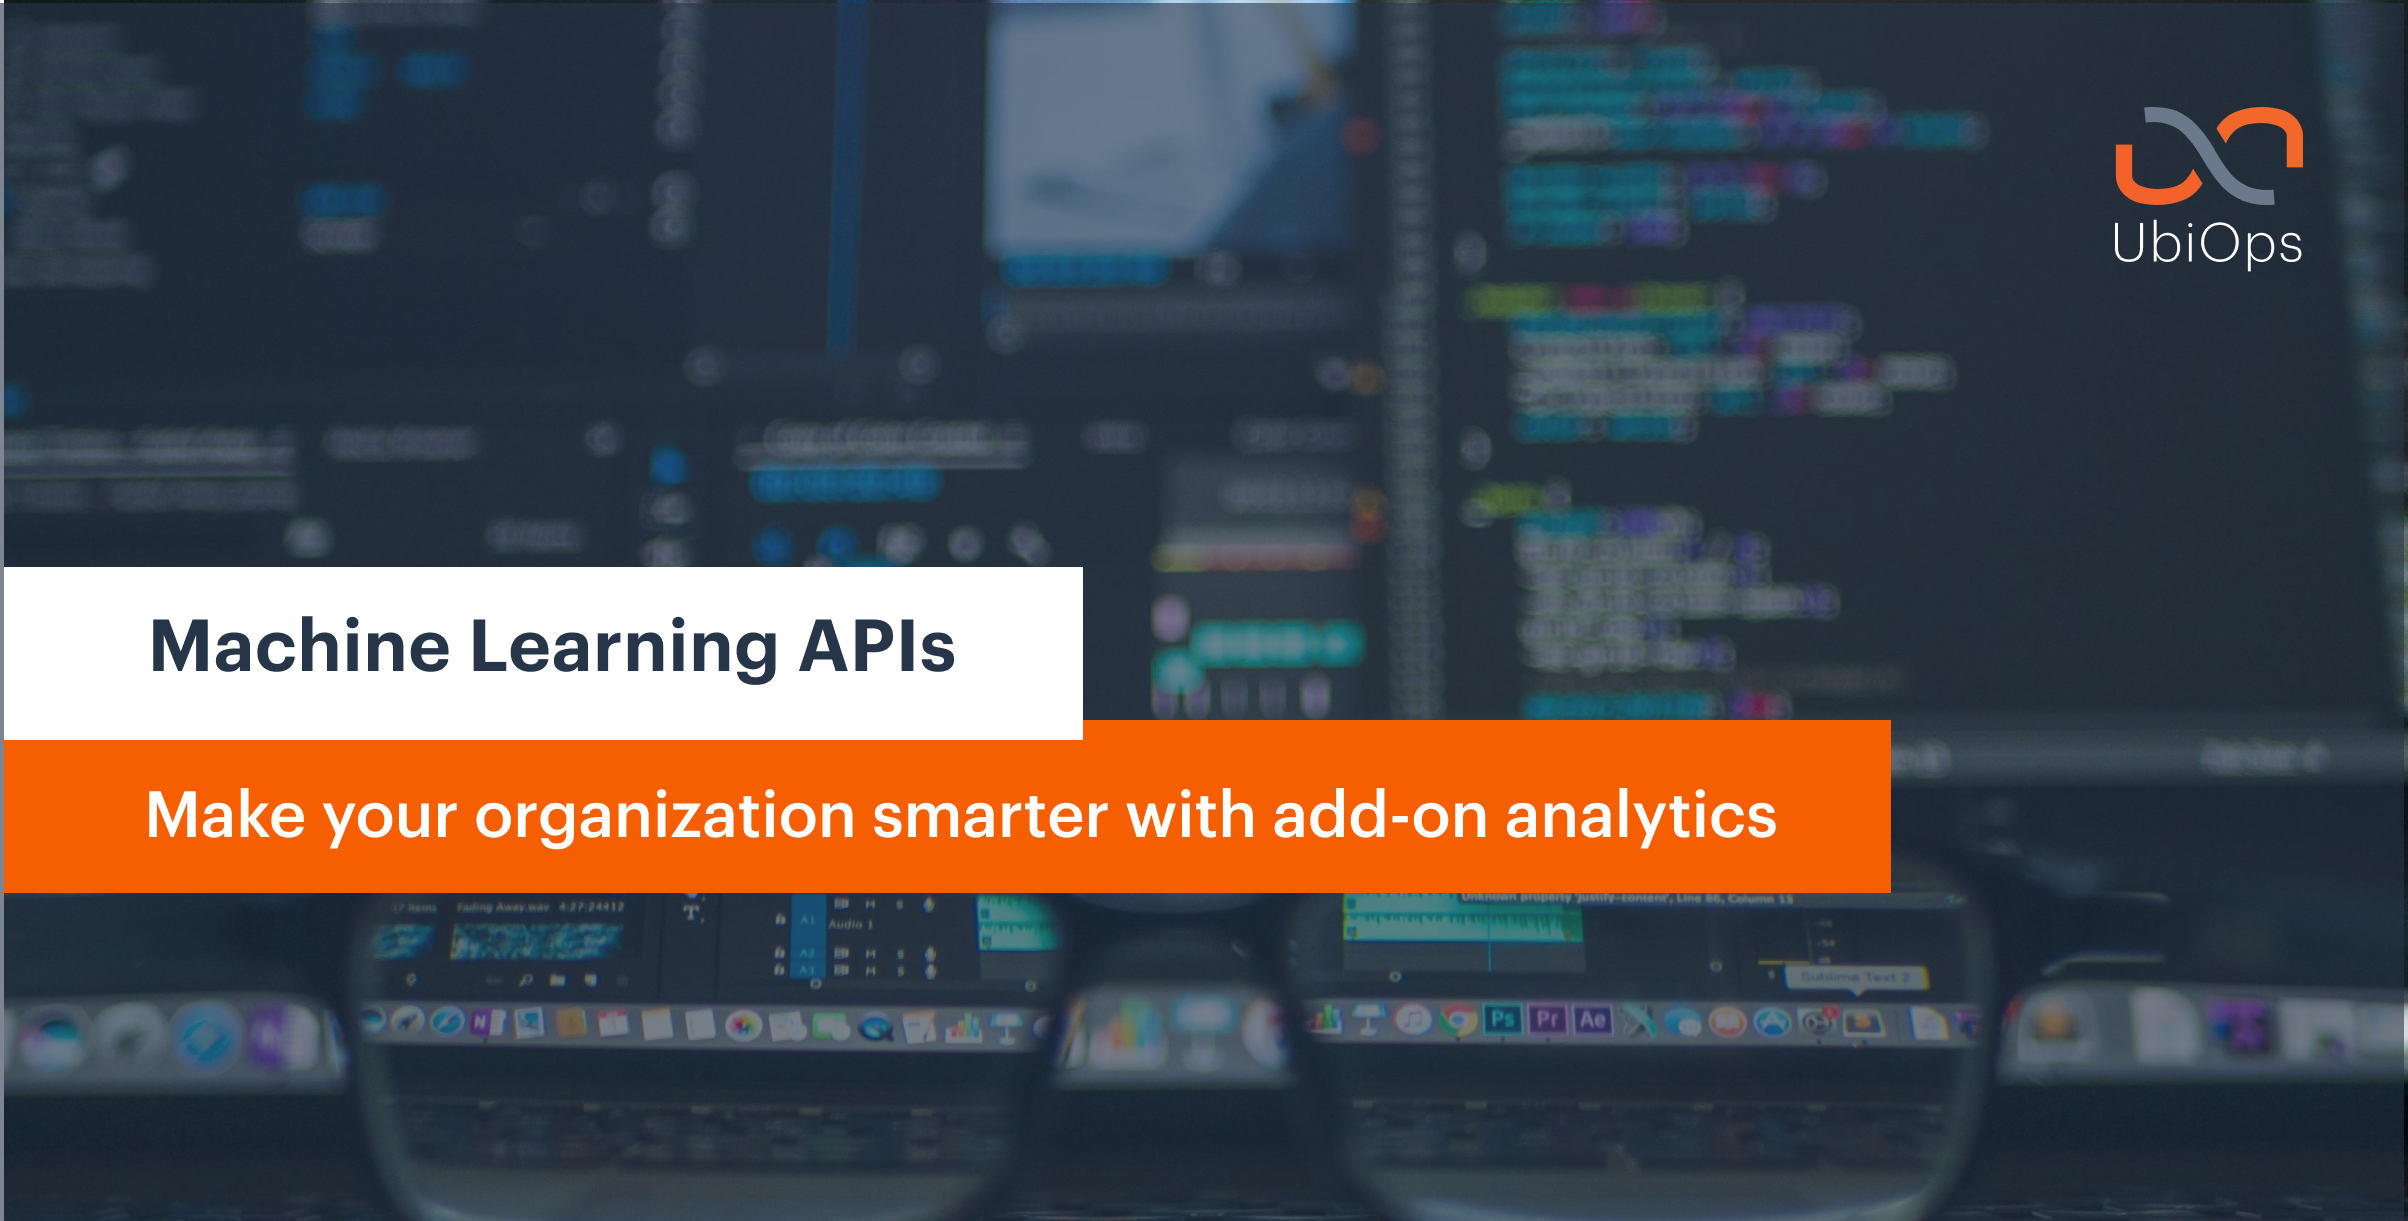 Make your organization smarter with add-on analytics.